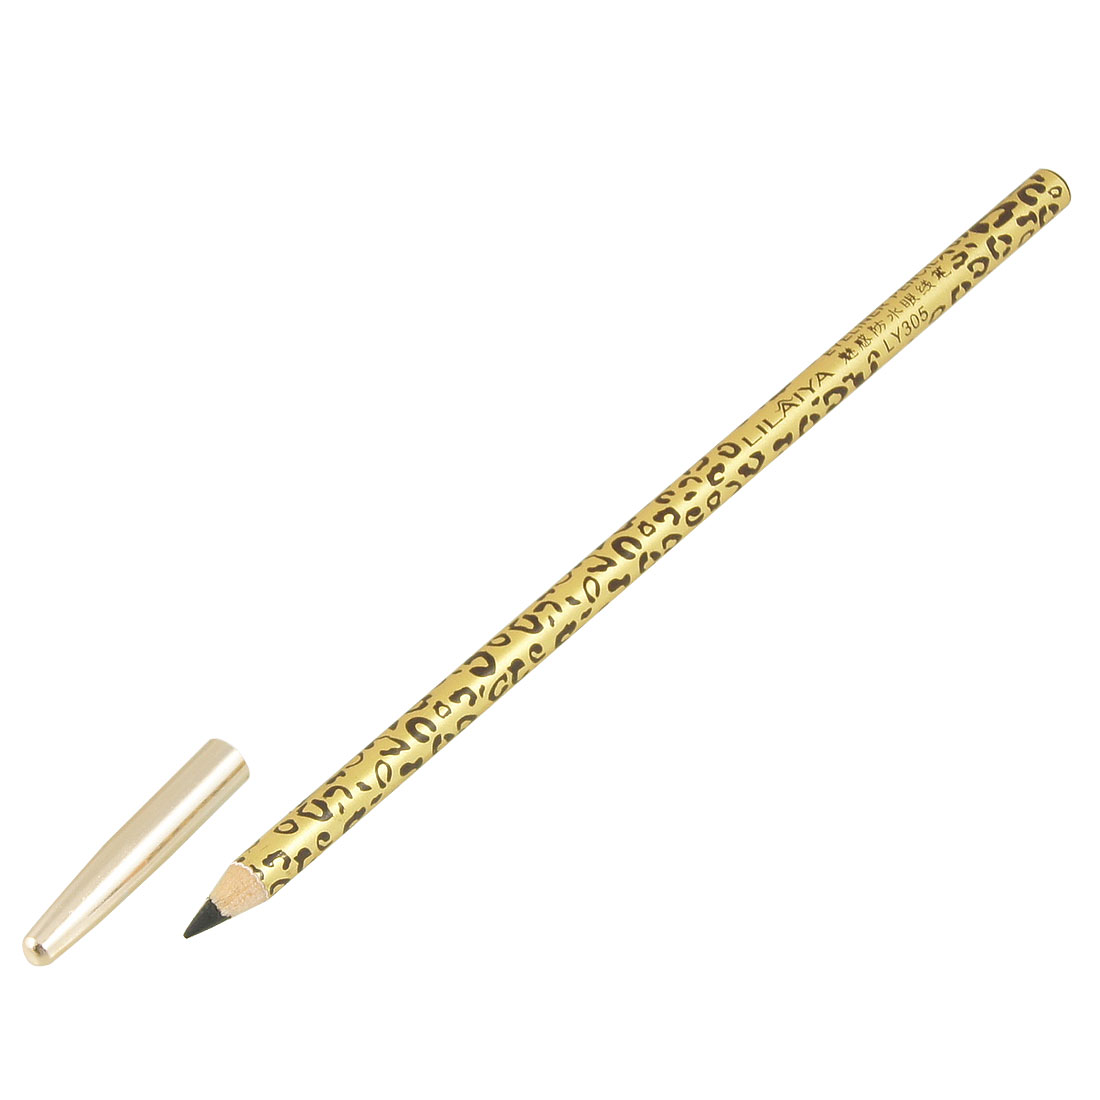 Black Tip Leopard Prints Eyeliner Pens Pencils Makeup Tool Gold Tone Brown